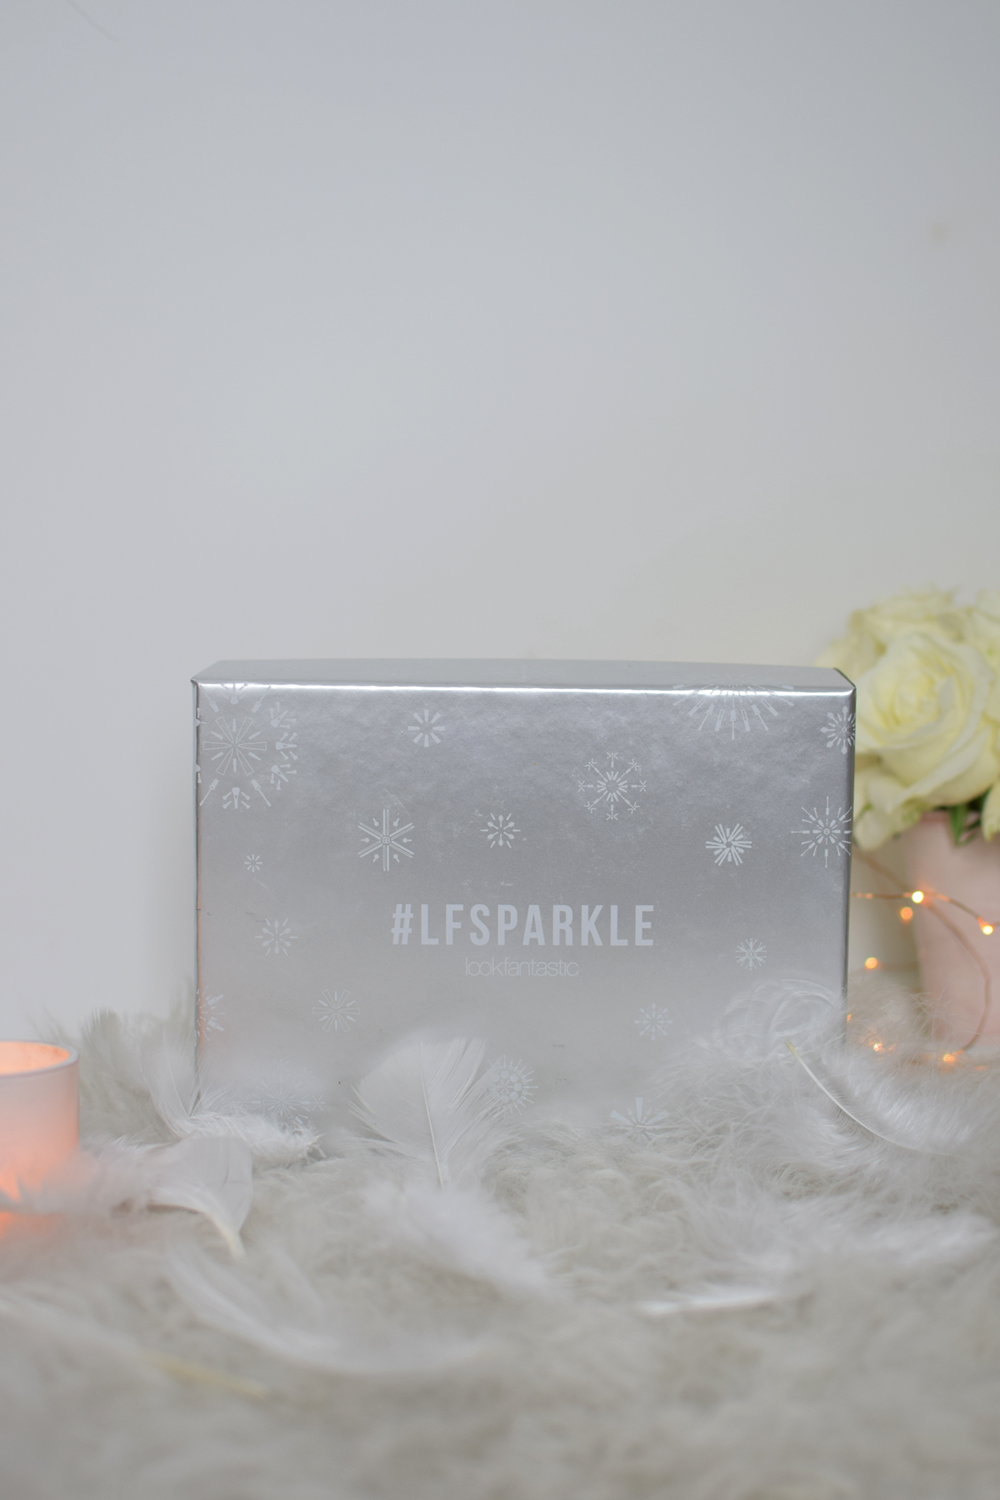 LFSparkle Beauty Box